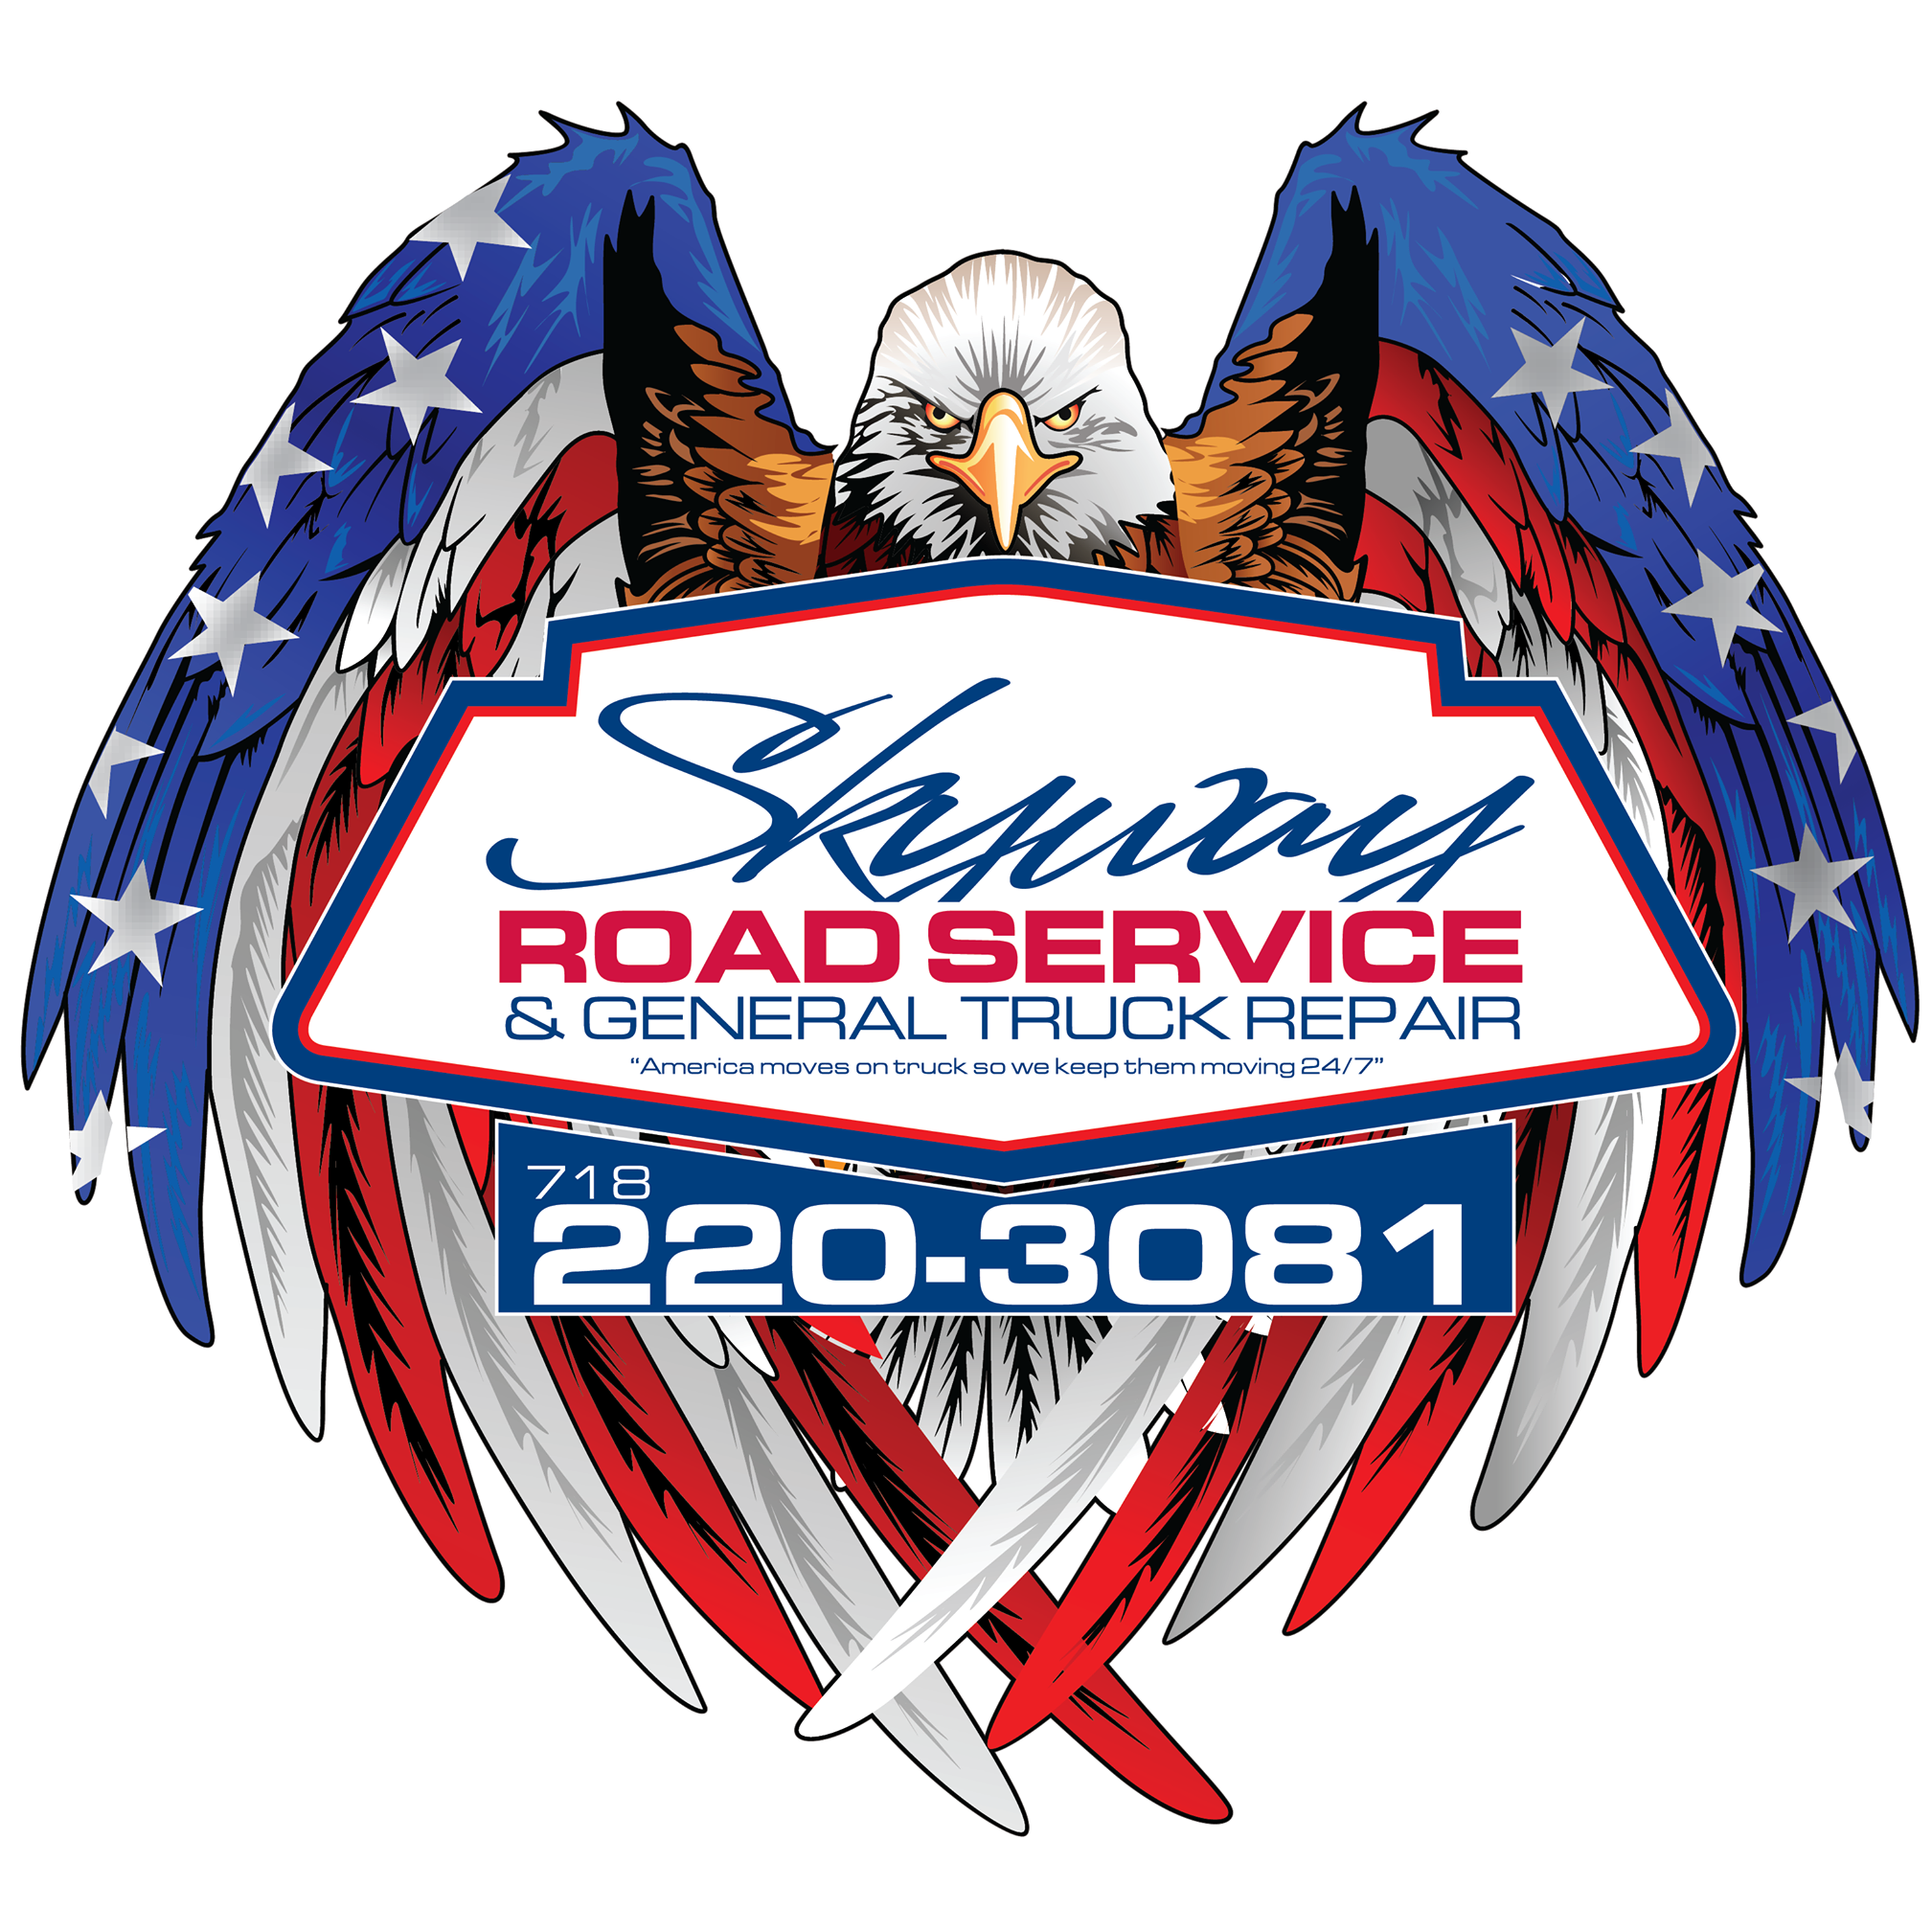 Skyway Road Service